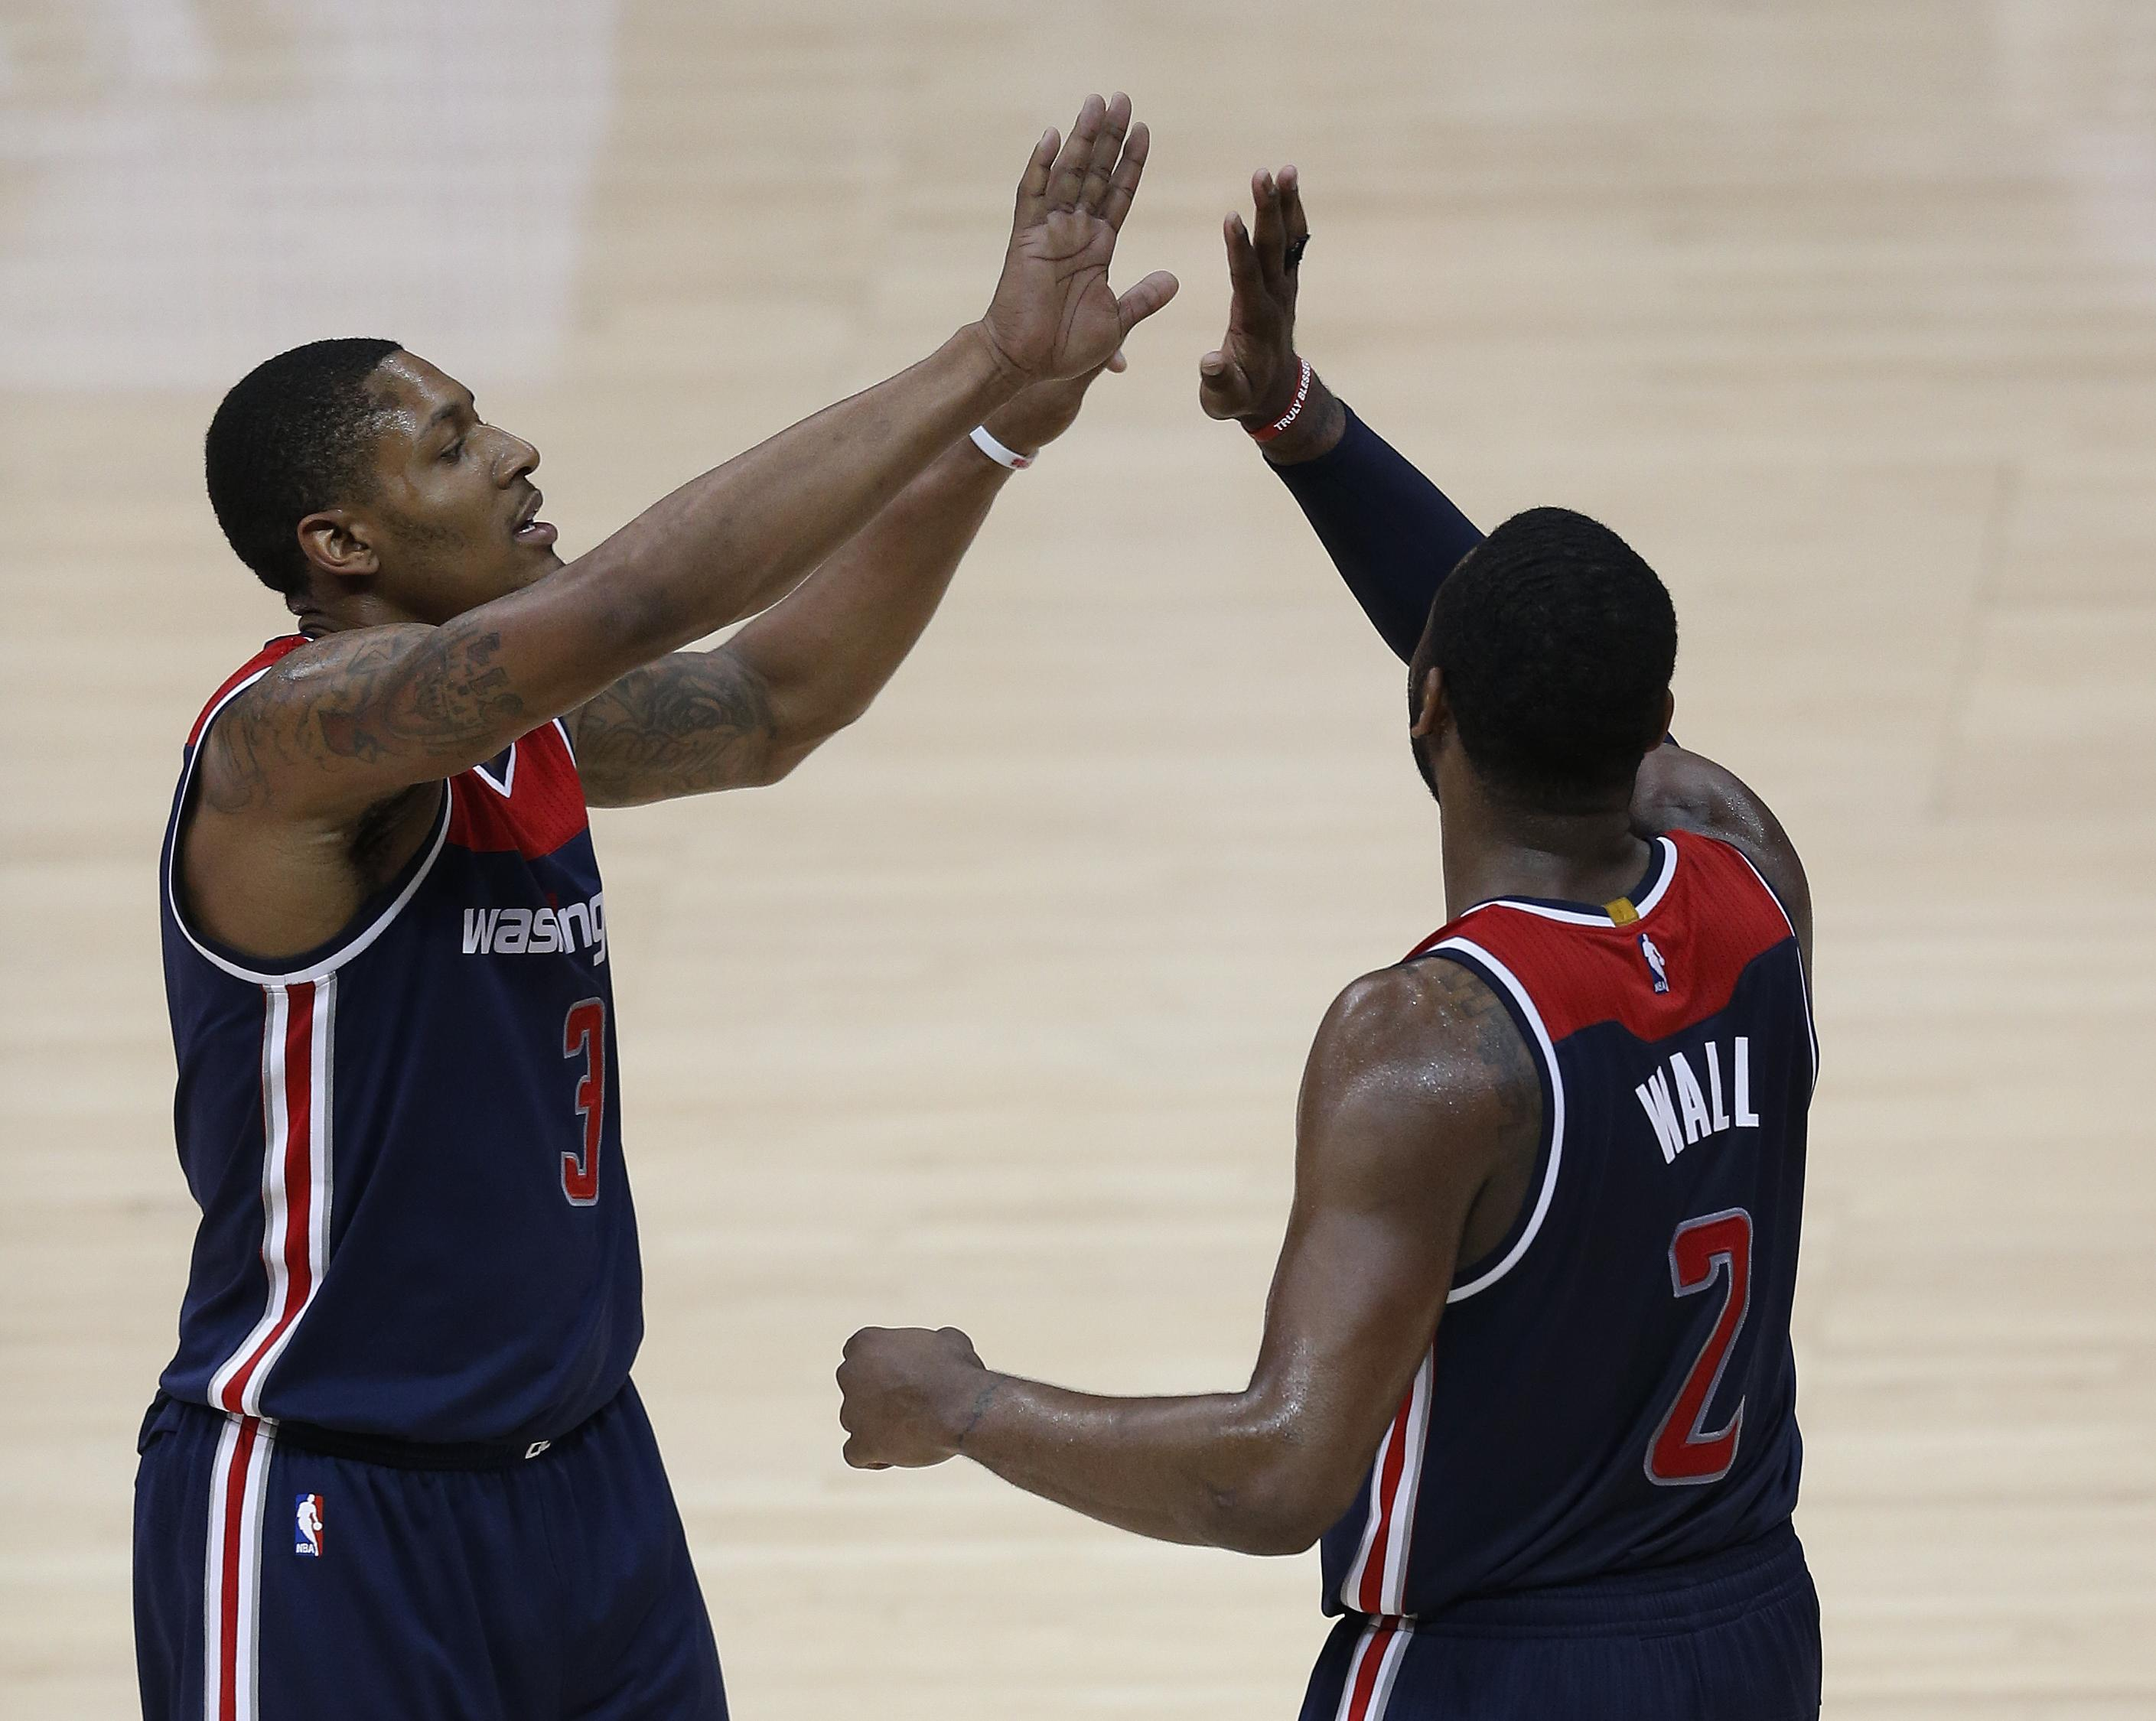 Wizards_hawks_basketball_58605